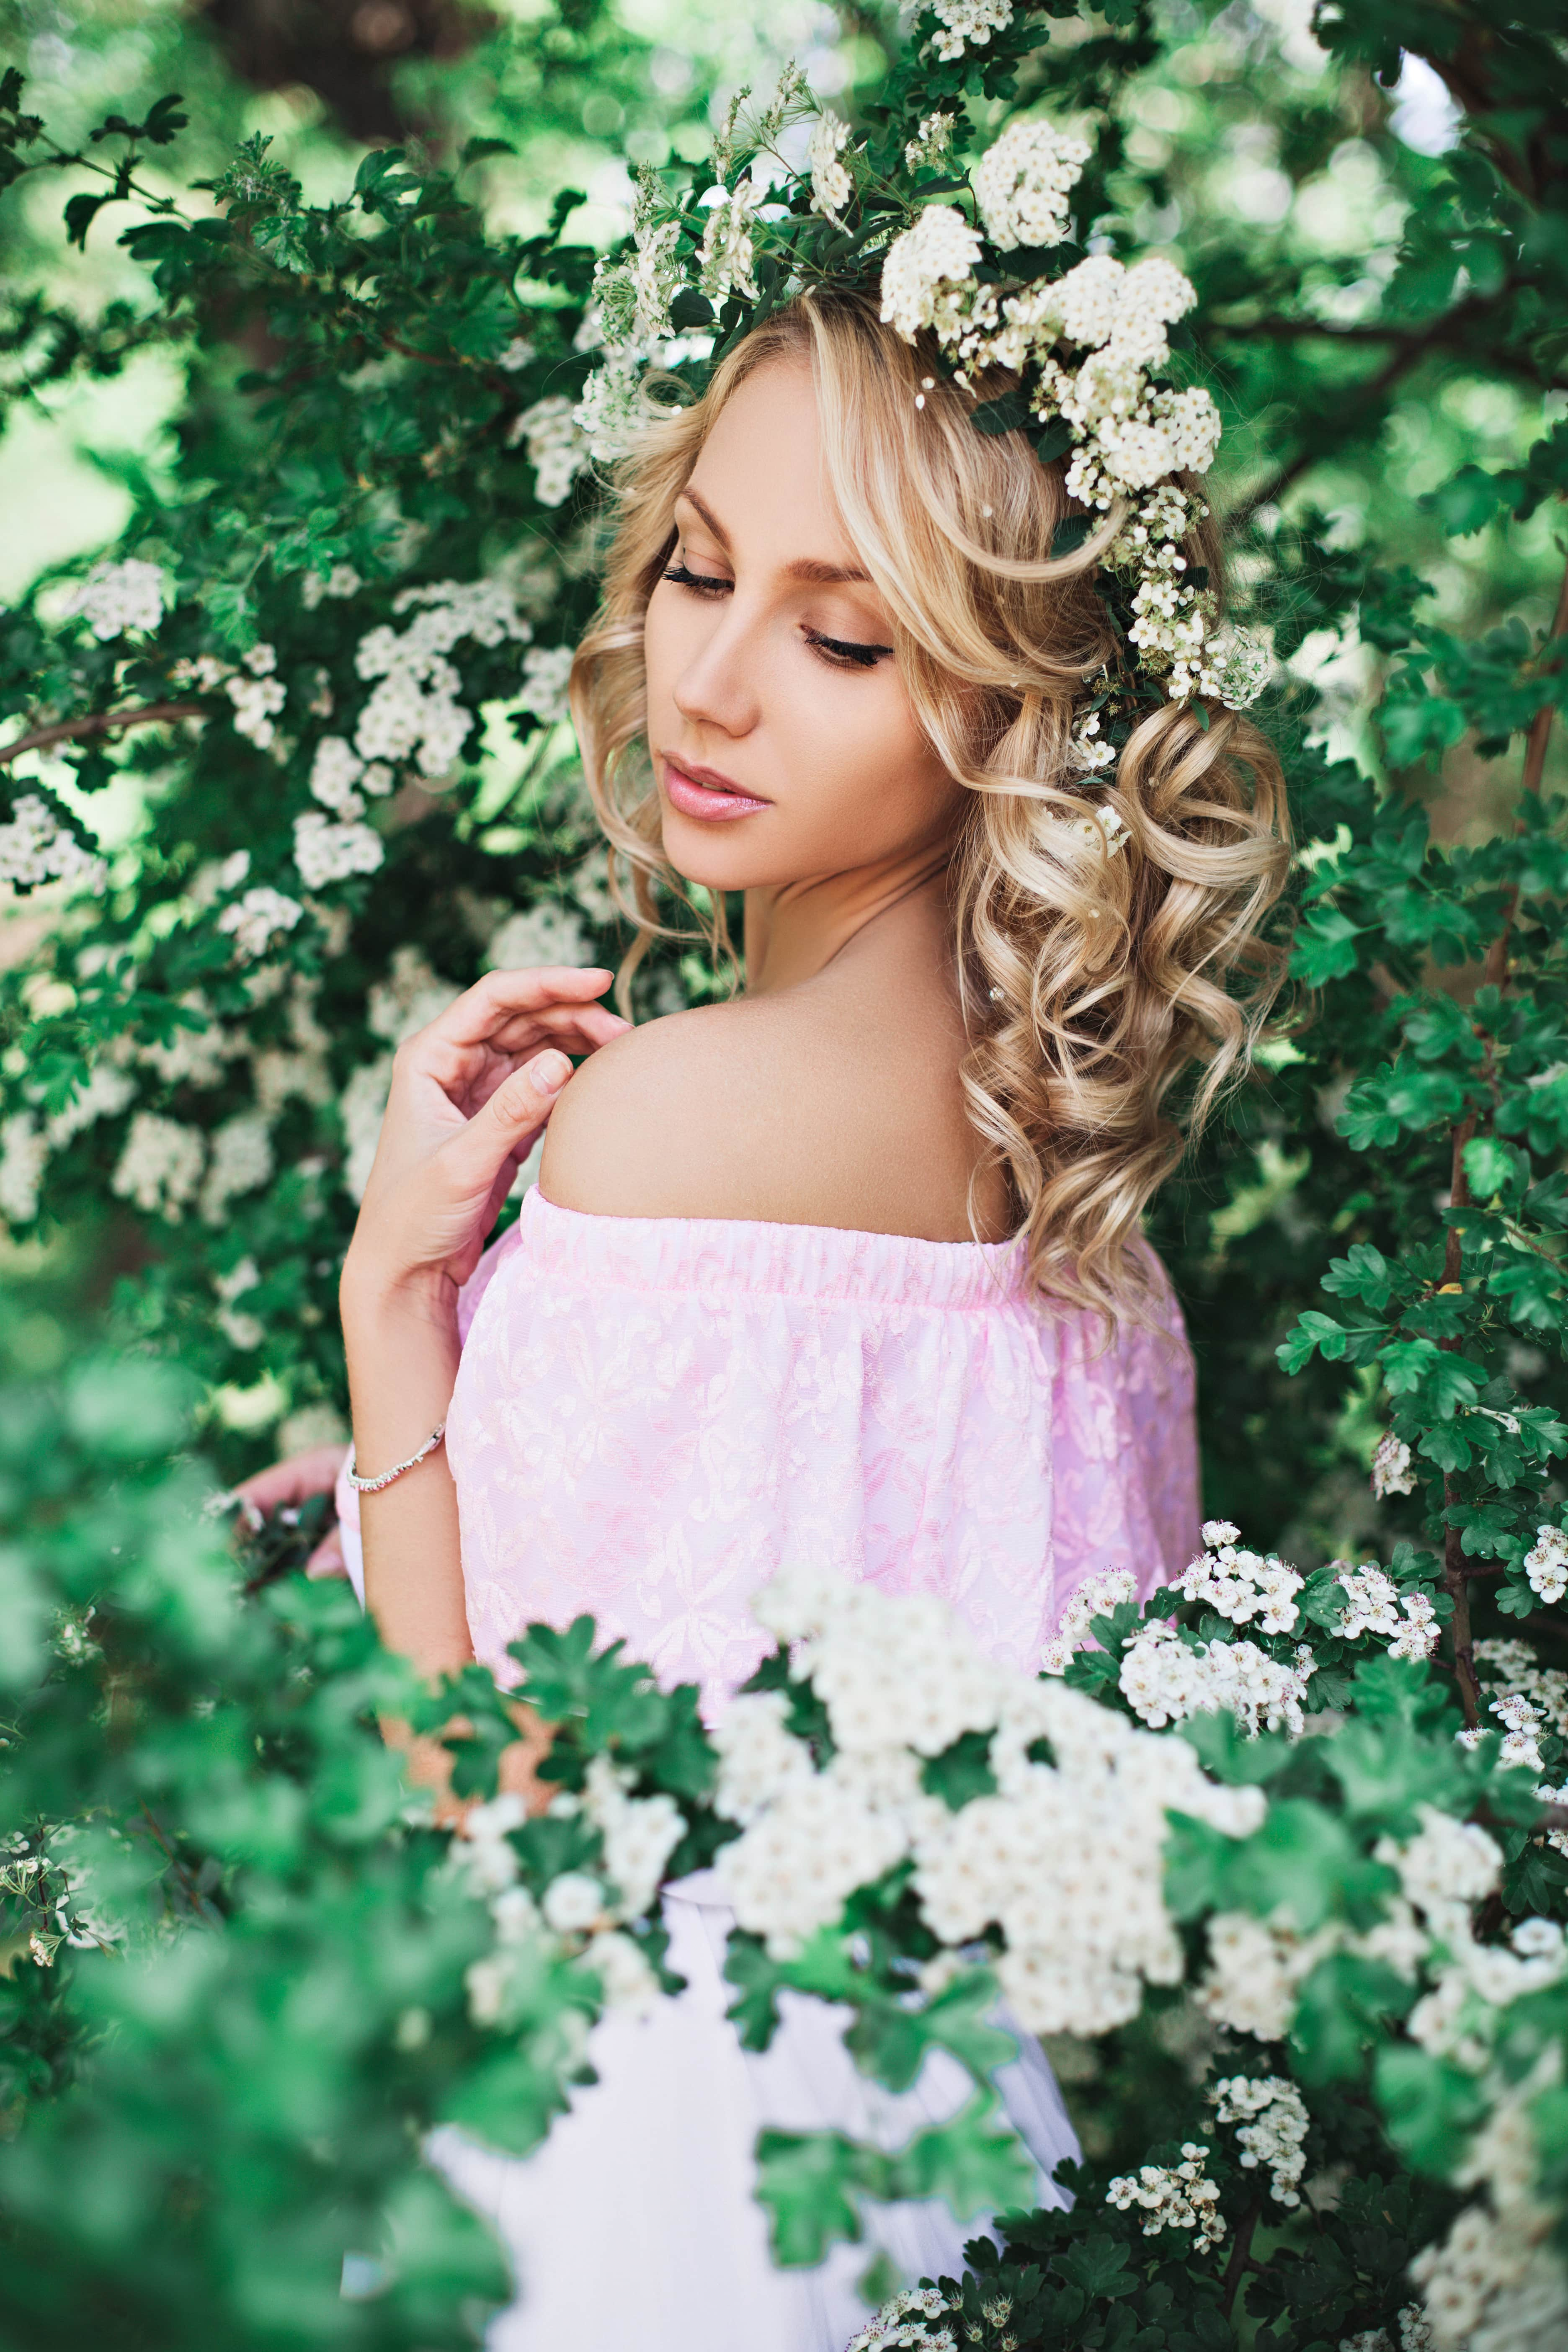 modern perm styles blonde curls floral crown